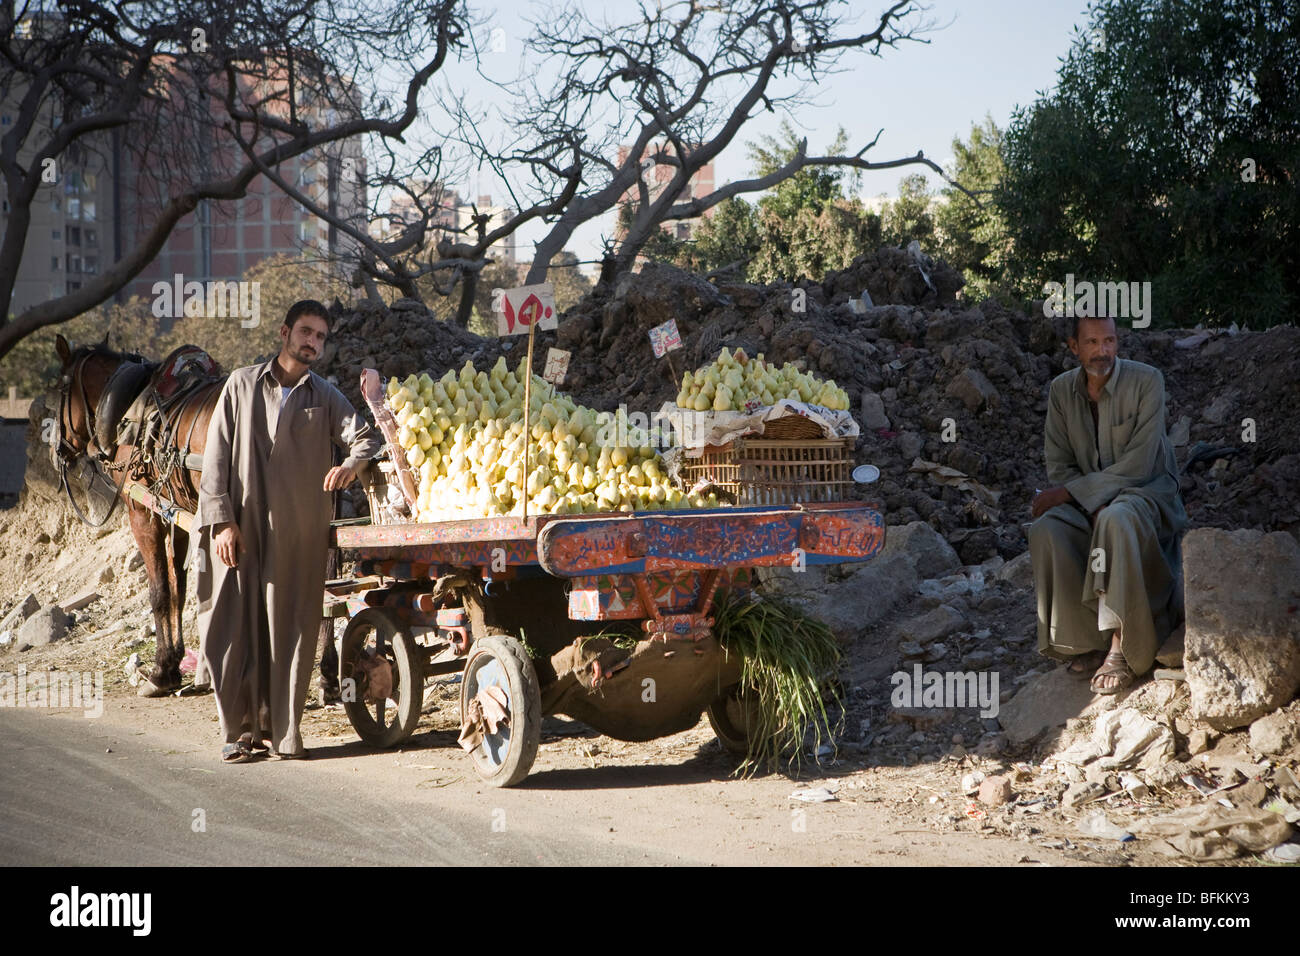 Fresh fruit salesmen with horse and cart shop on a road in central Cairo, Egypt - Stock Image